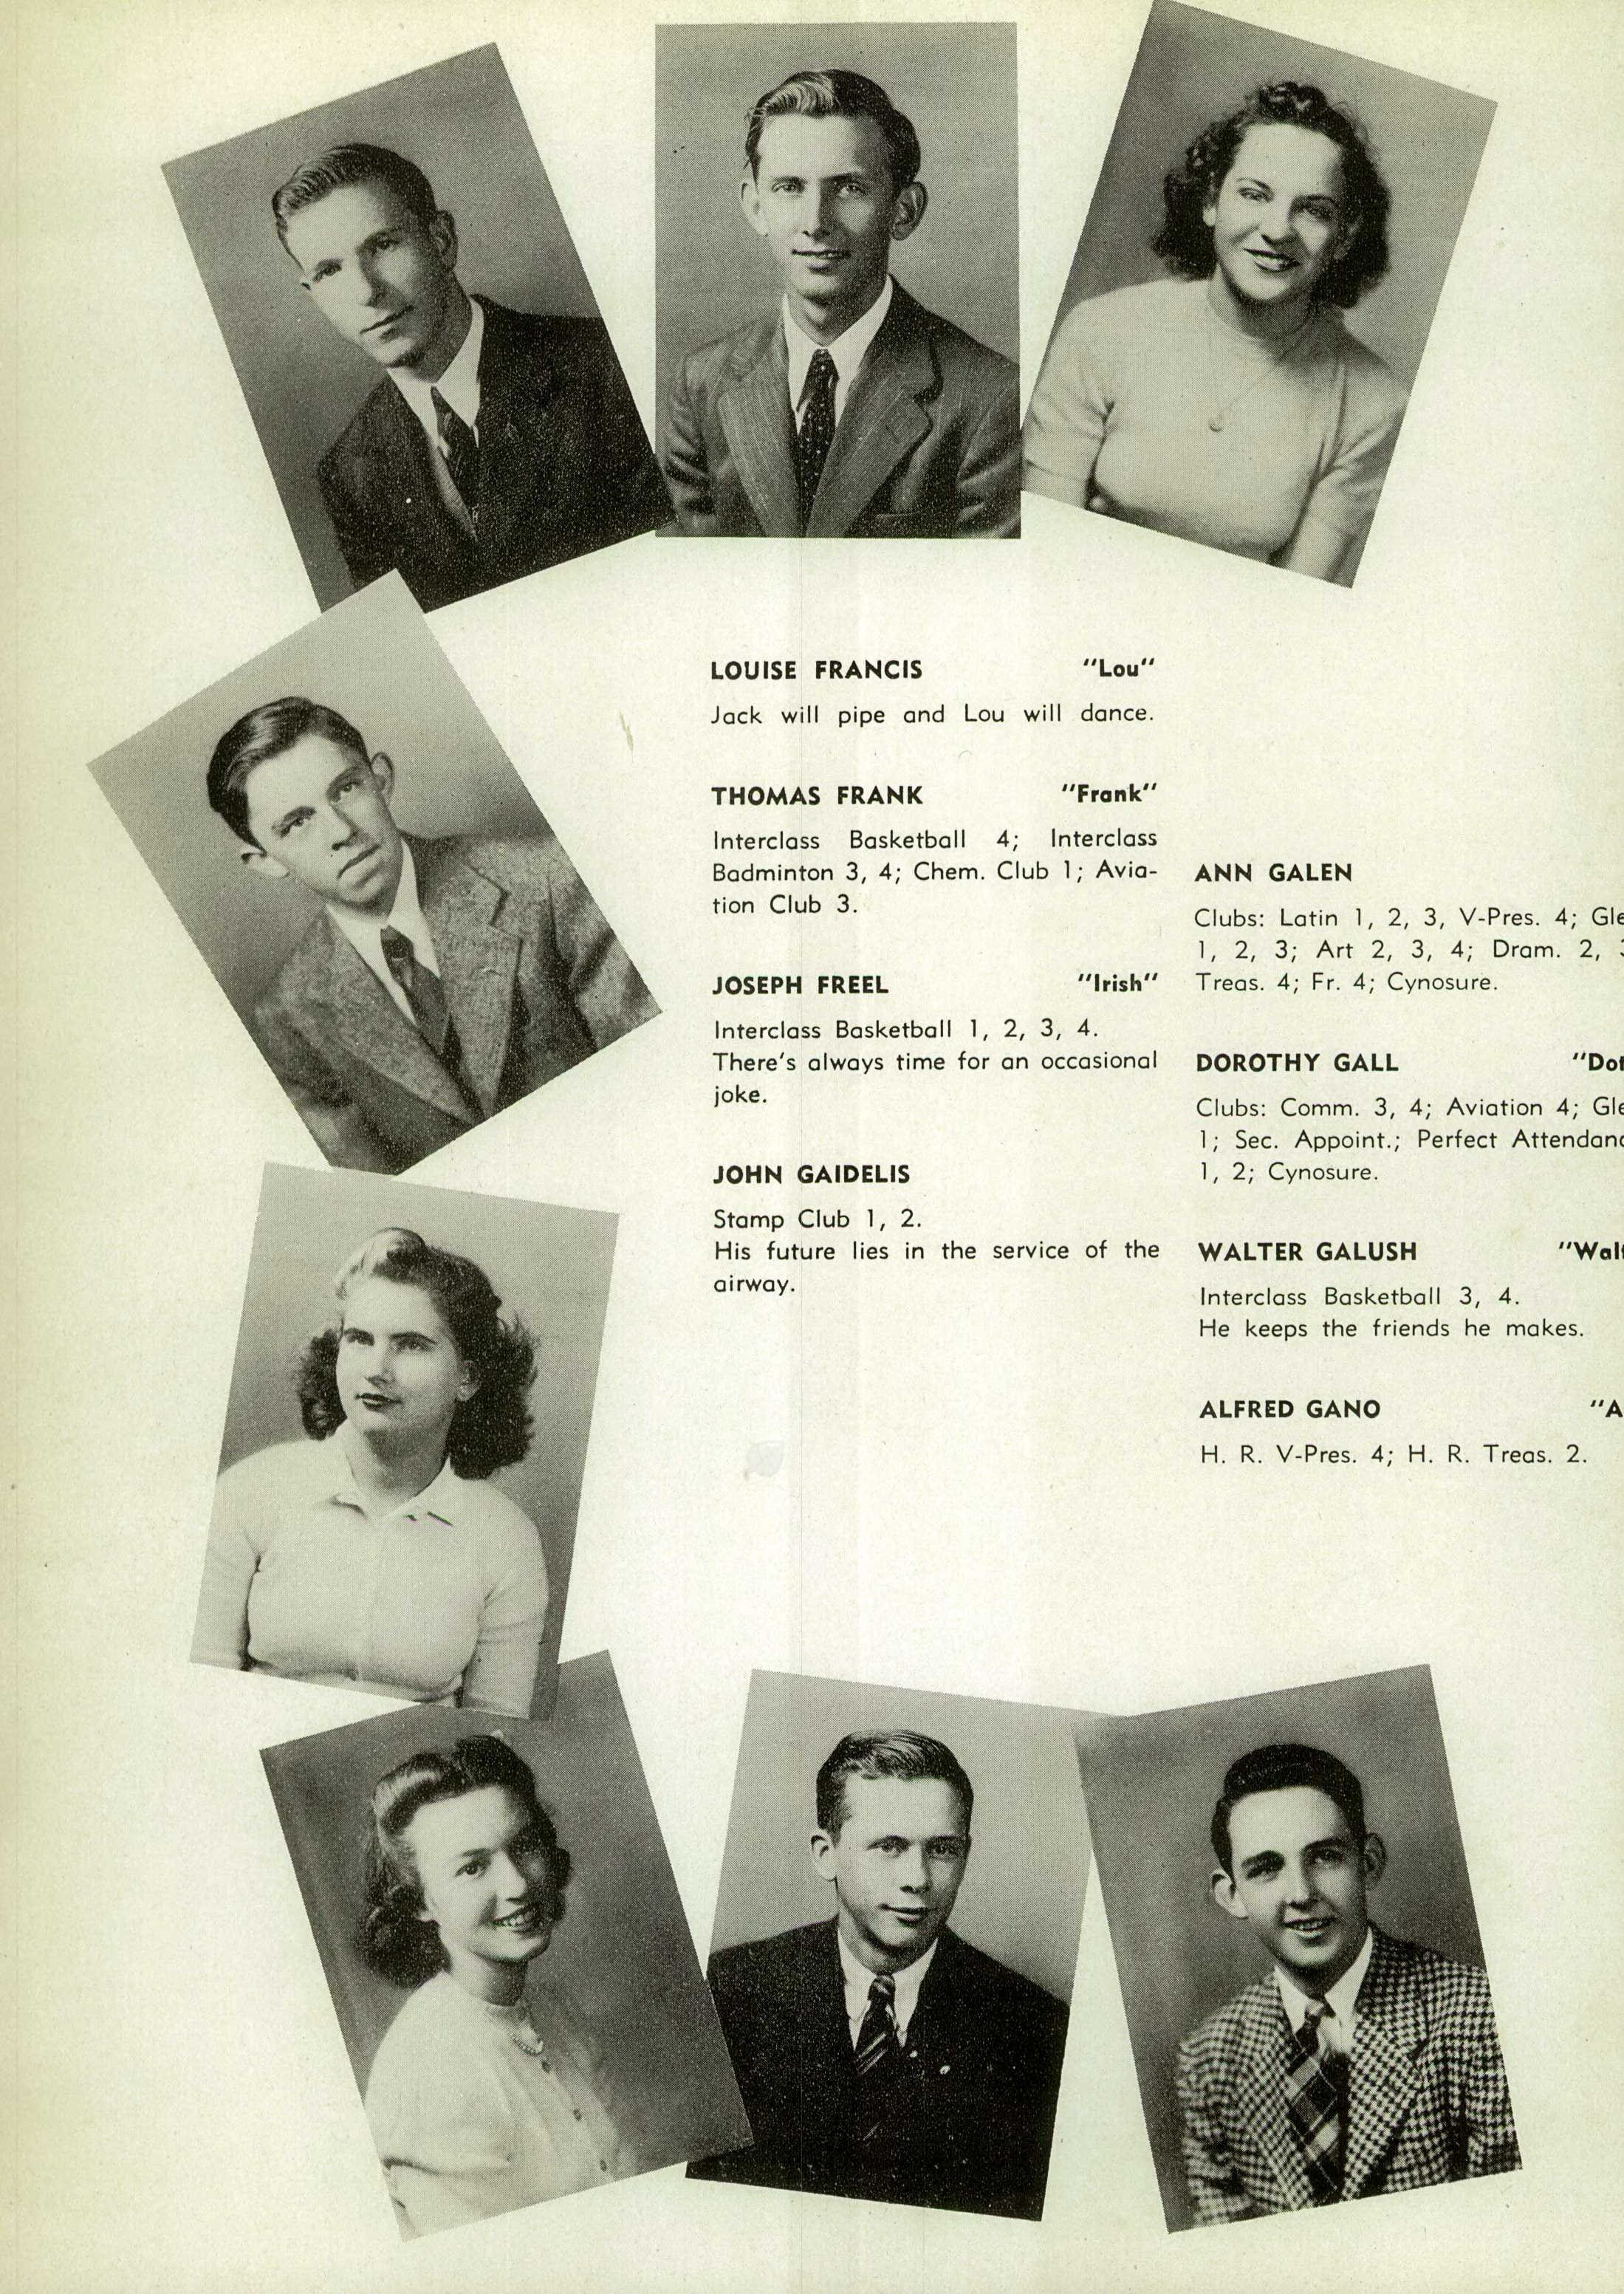 Yearbook_full_record_image.jpg